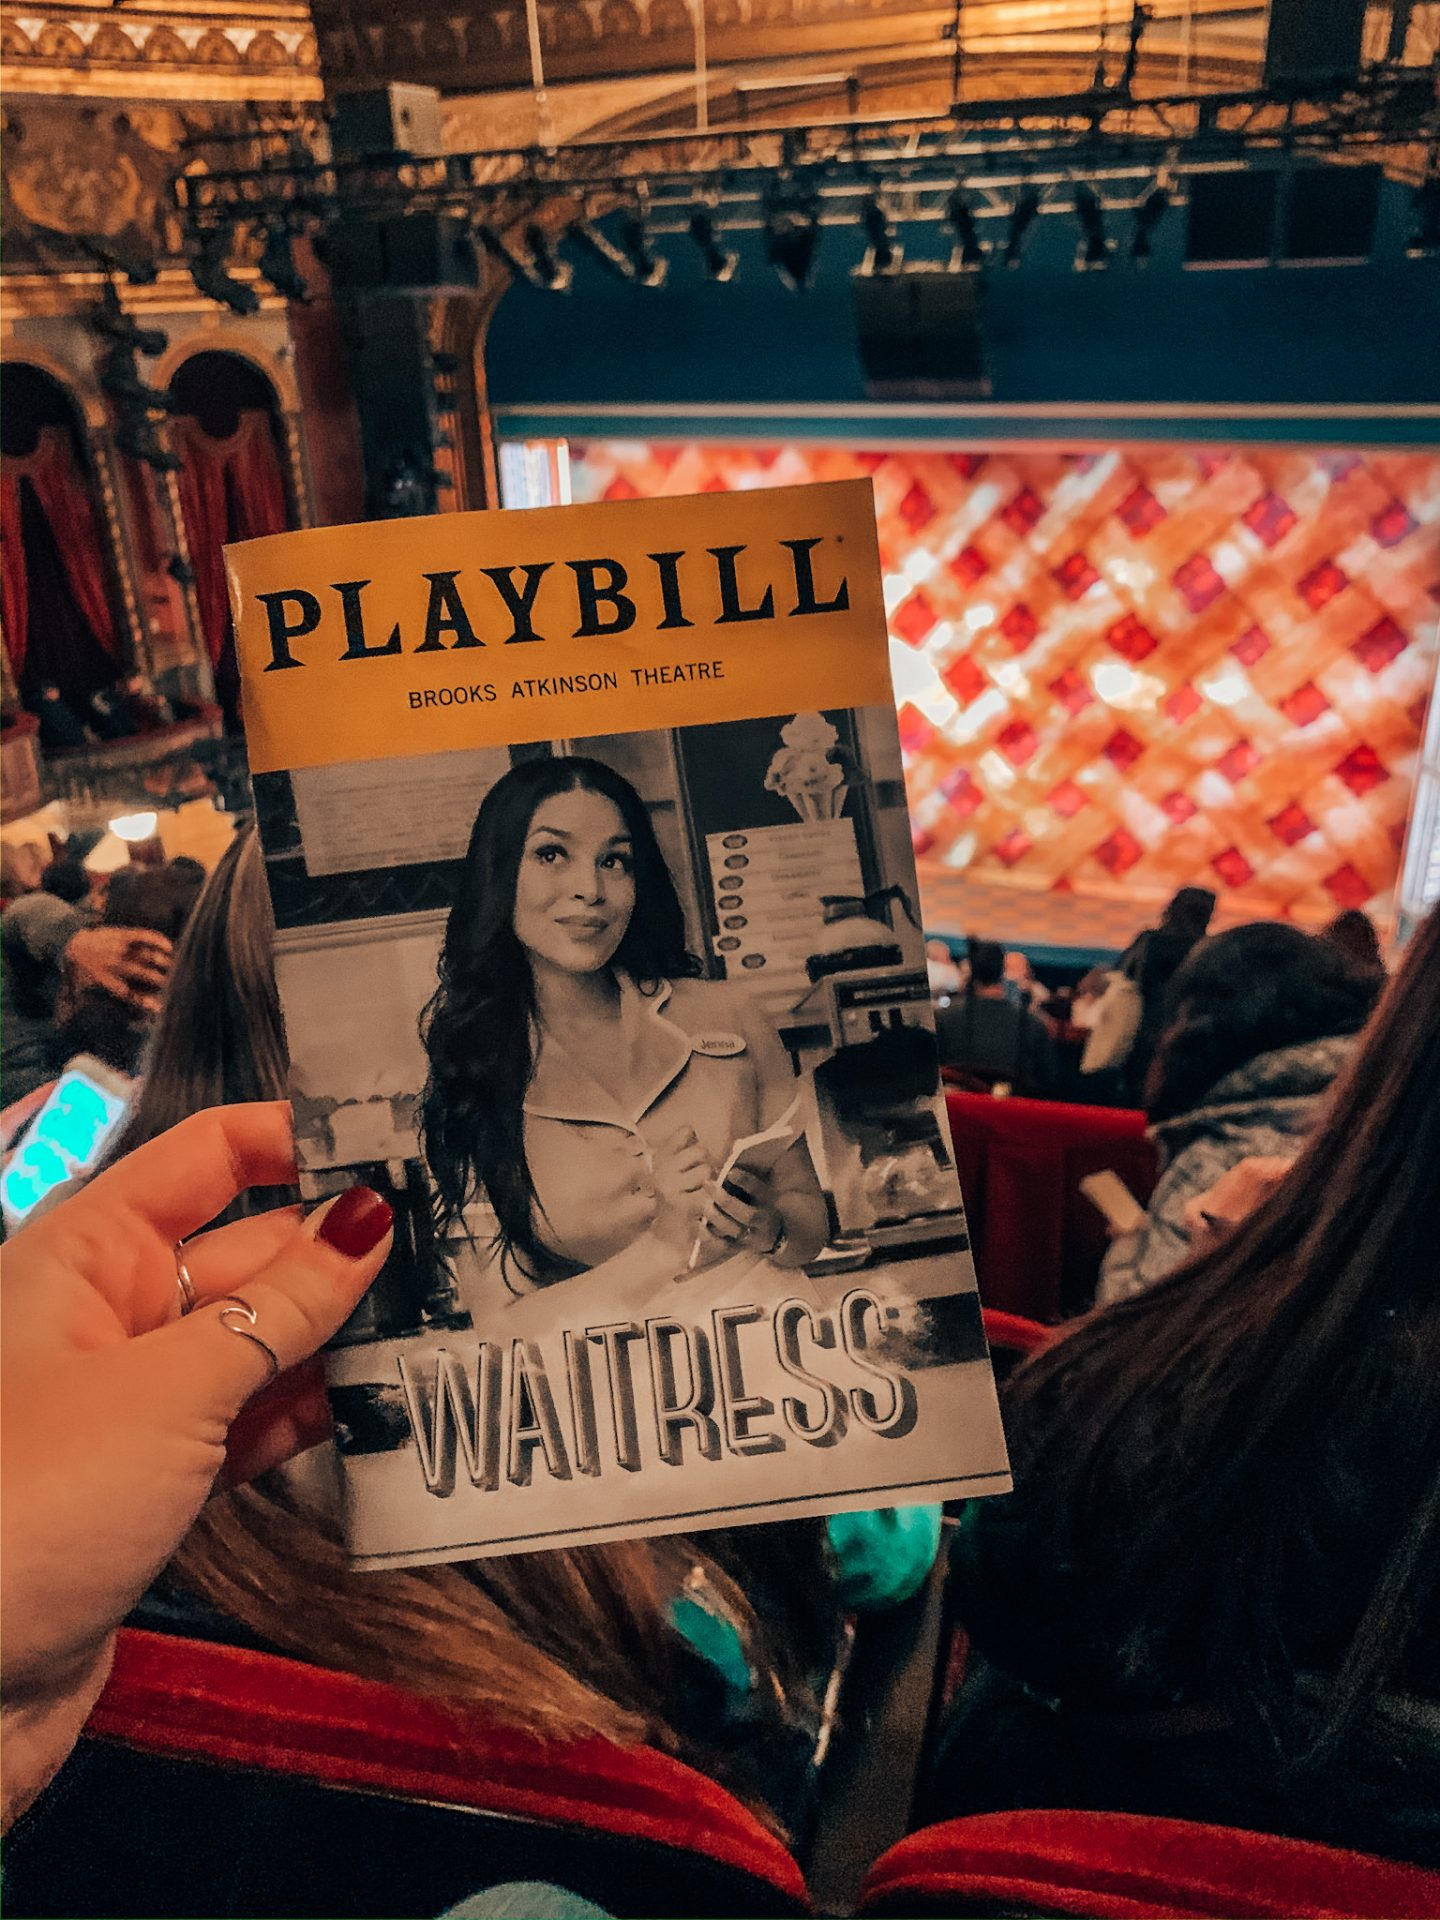 Broadway is one of the best things to do in New York City